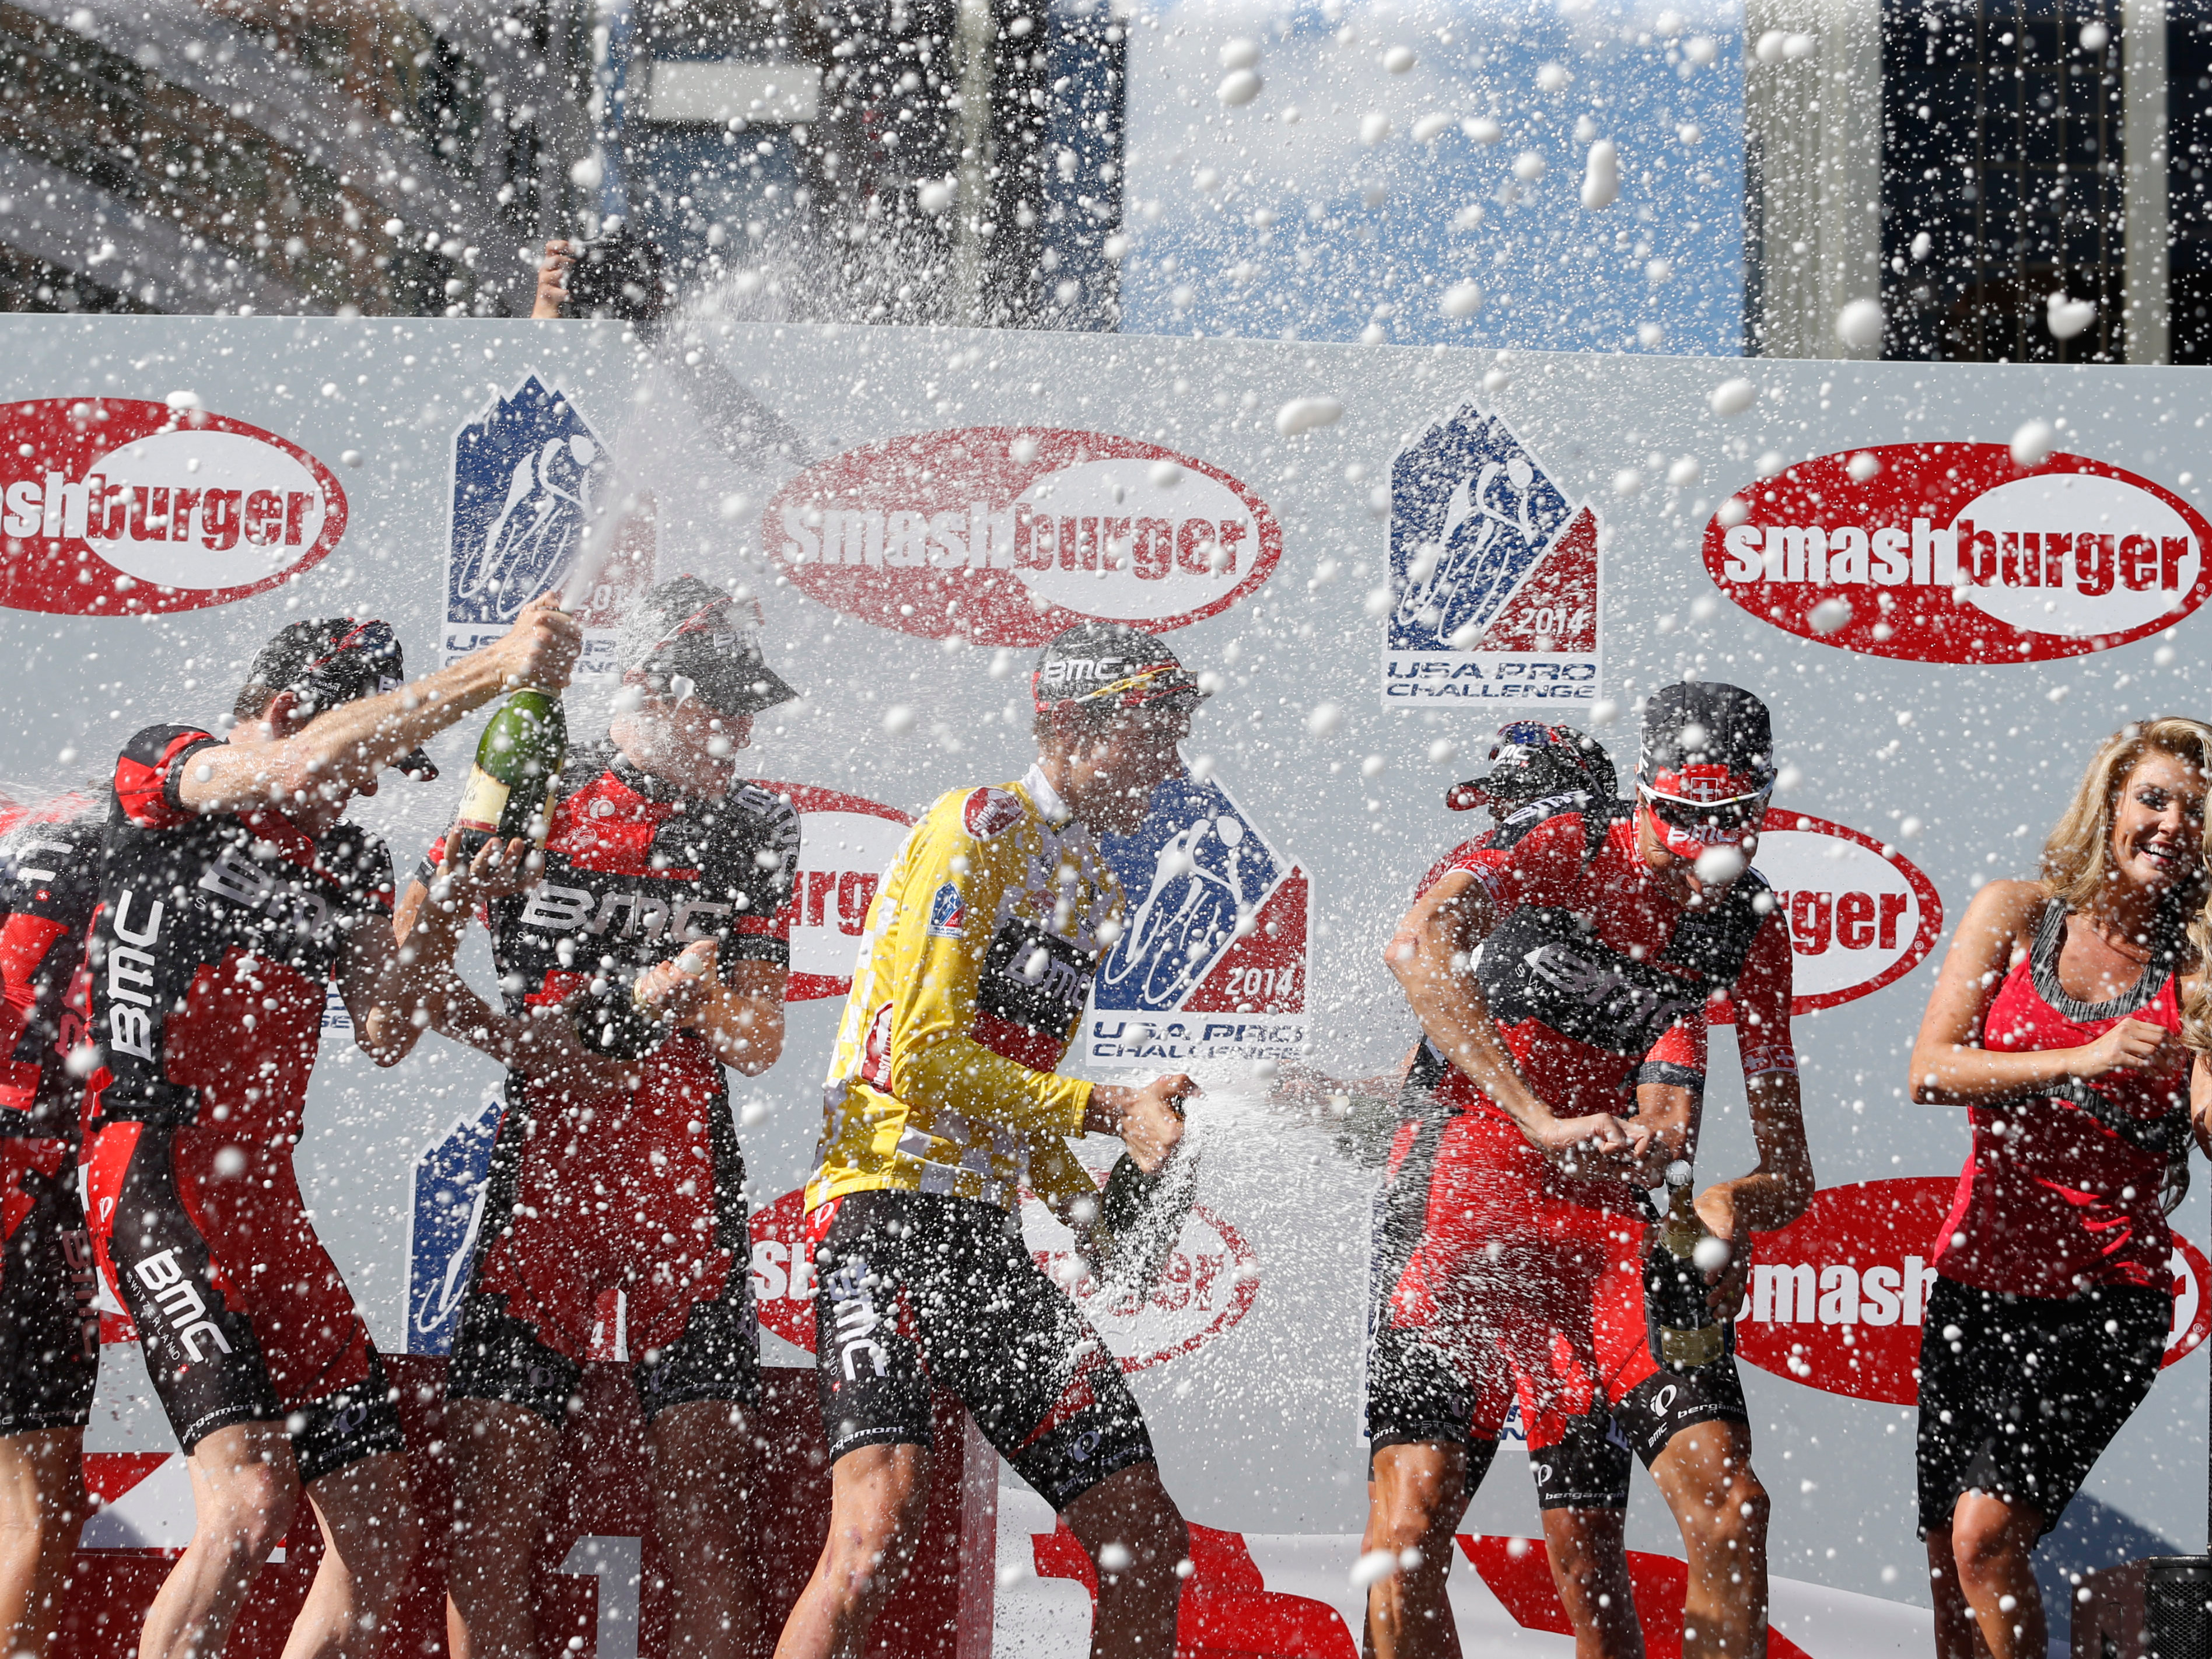 Photo: USA Pro Challenge winners celebrate